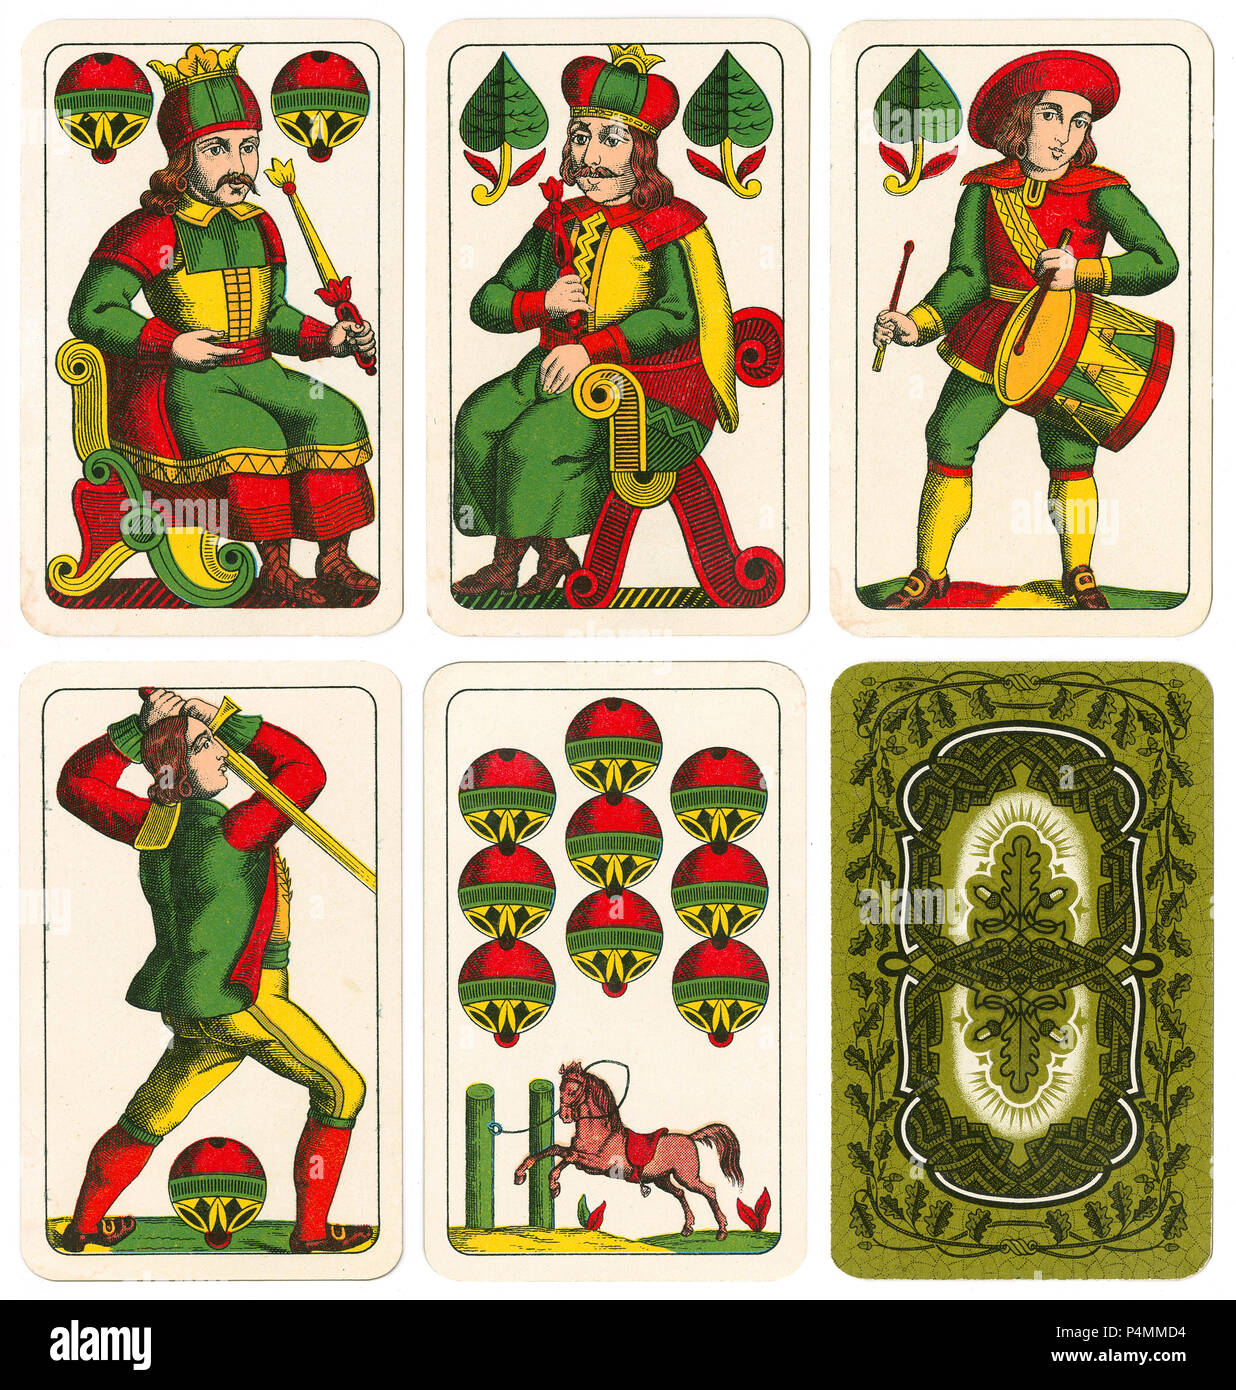 A selection of vintage Bohemian pattern playing cards, with oak leaf back, based on early 16th-century German designs. - Stock Image